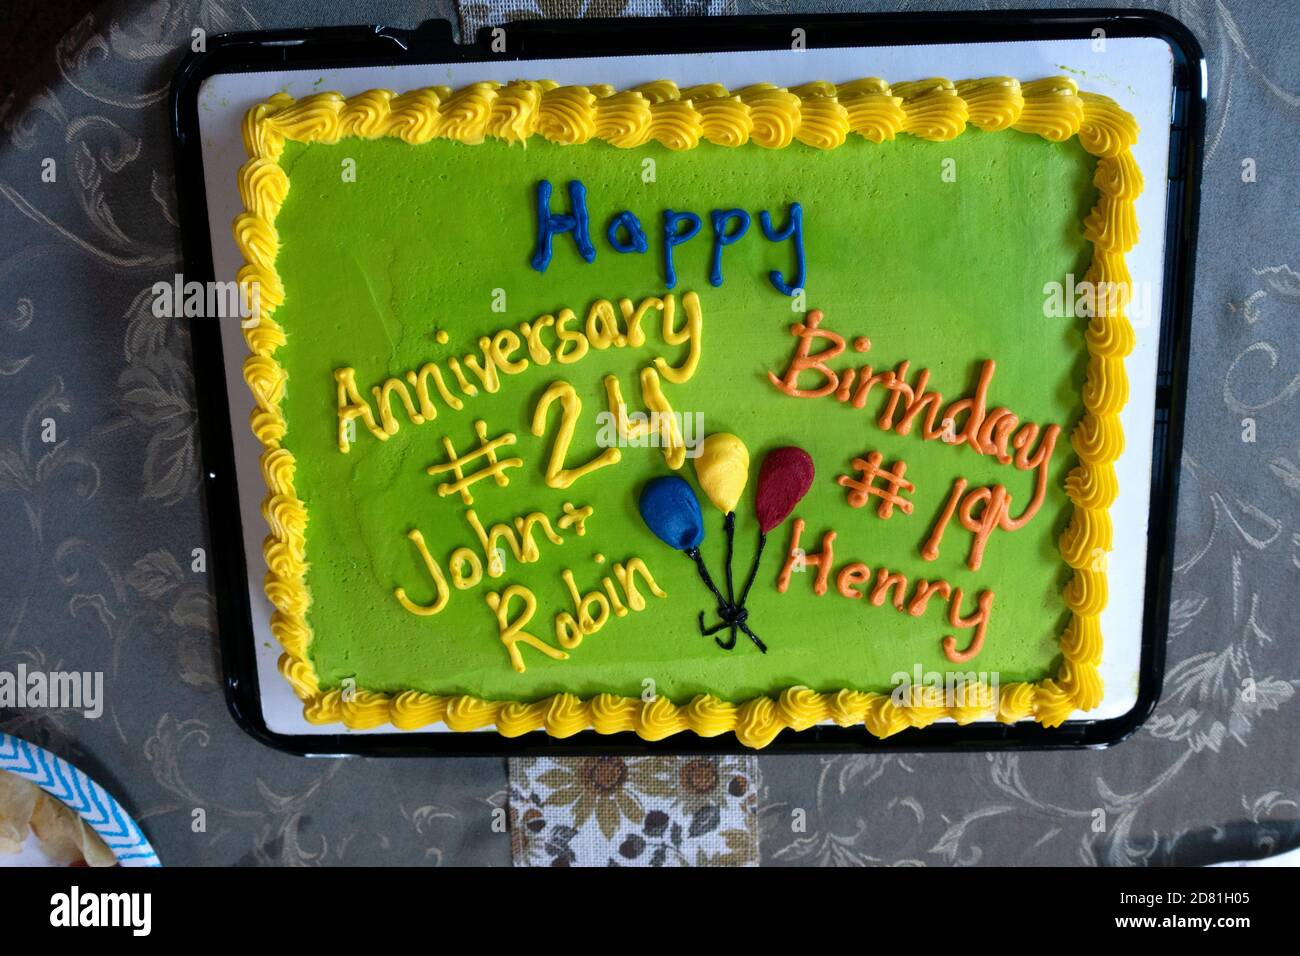 Celebration with a green cake for birthday and anniversary. Downers Grove Illinois IL USA Stock Photo